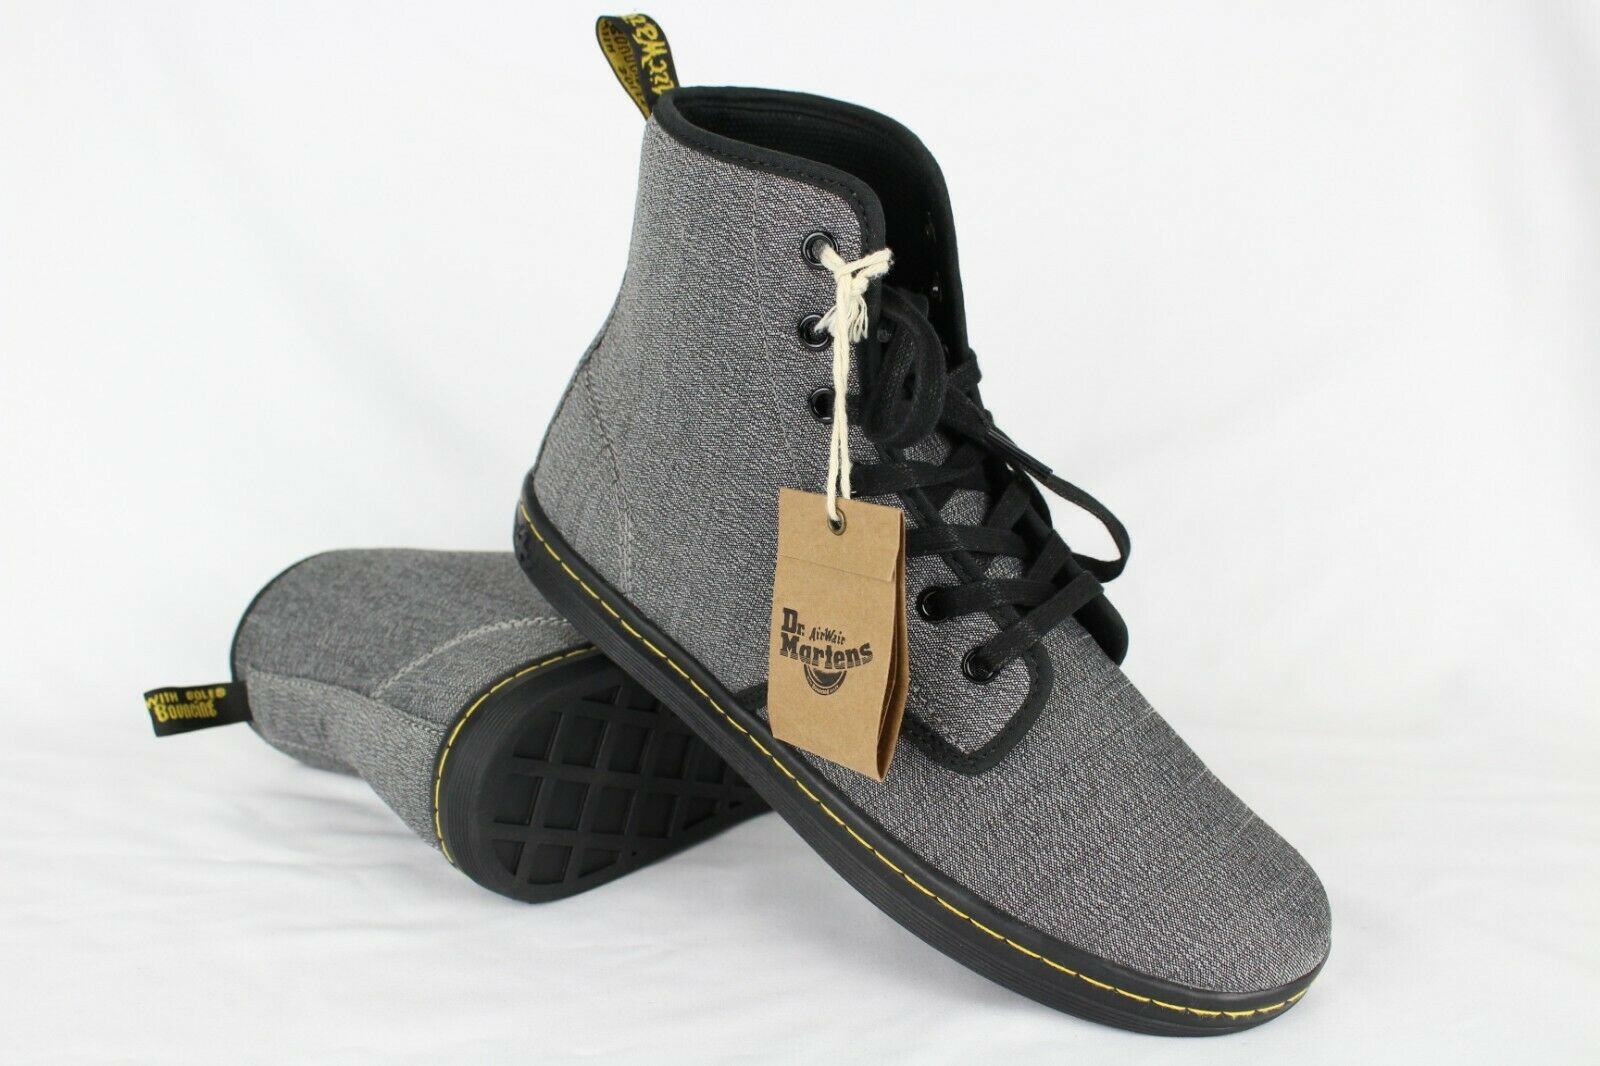 New Dr. Martens Women's Shoreditch Twill 7-Eye Boots Size 10 Mid Grey Serge